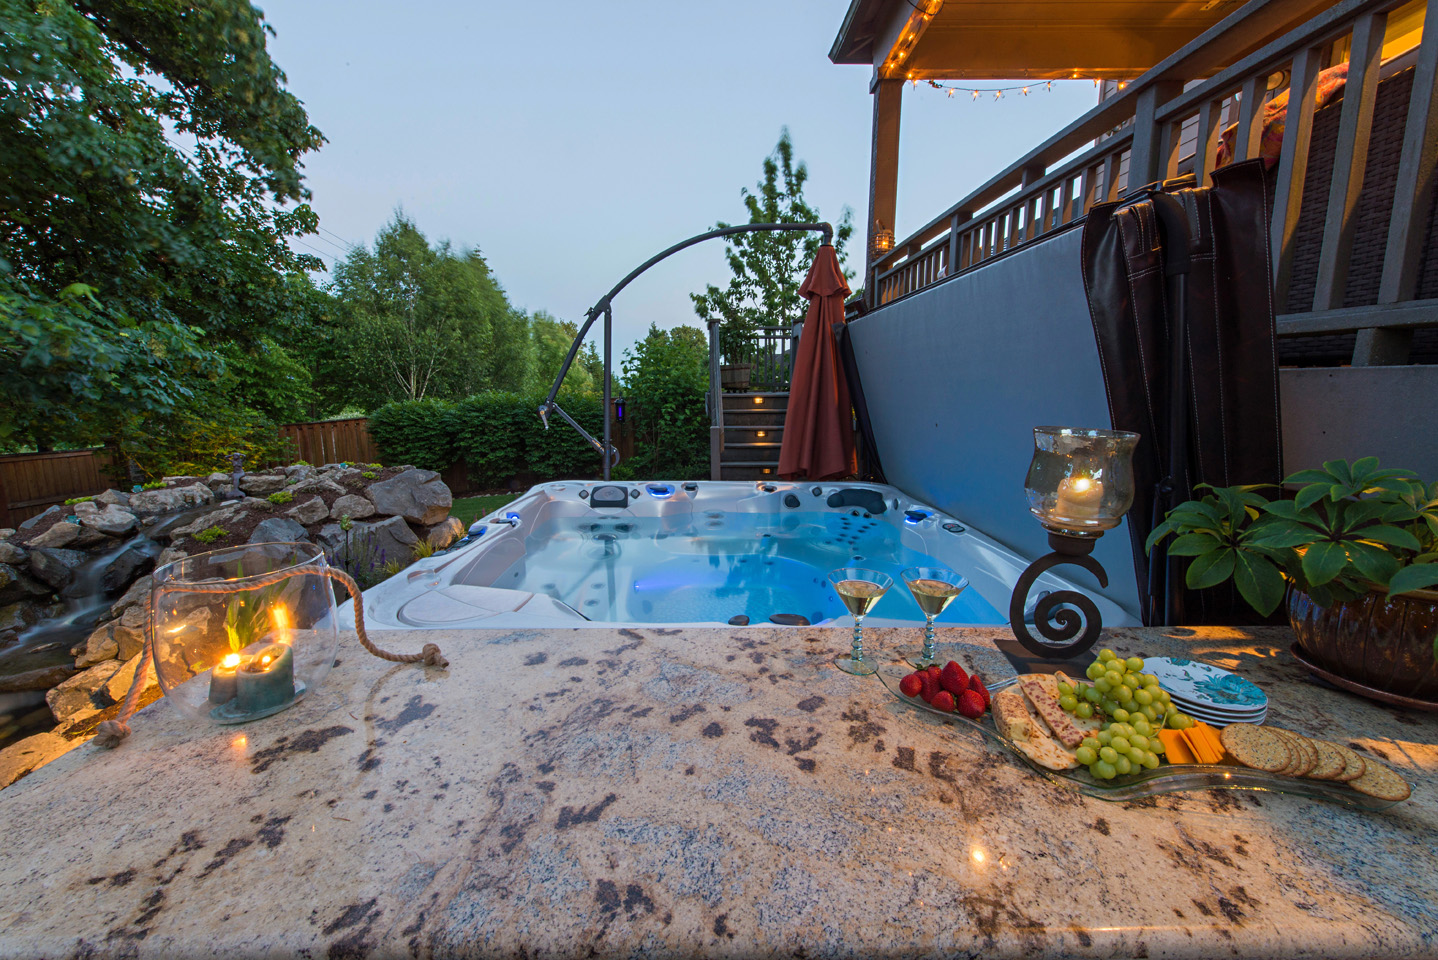 Bar wrapped Spa. Some want to mingle, some want to Soak. . .